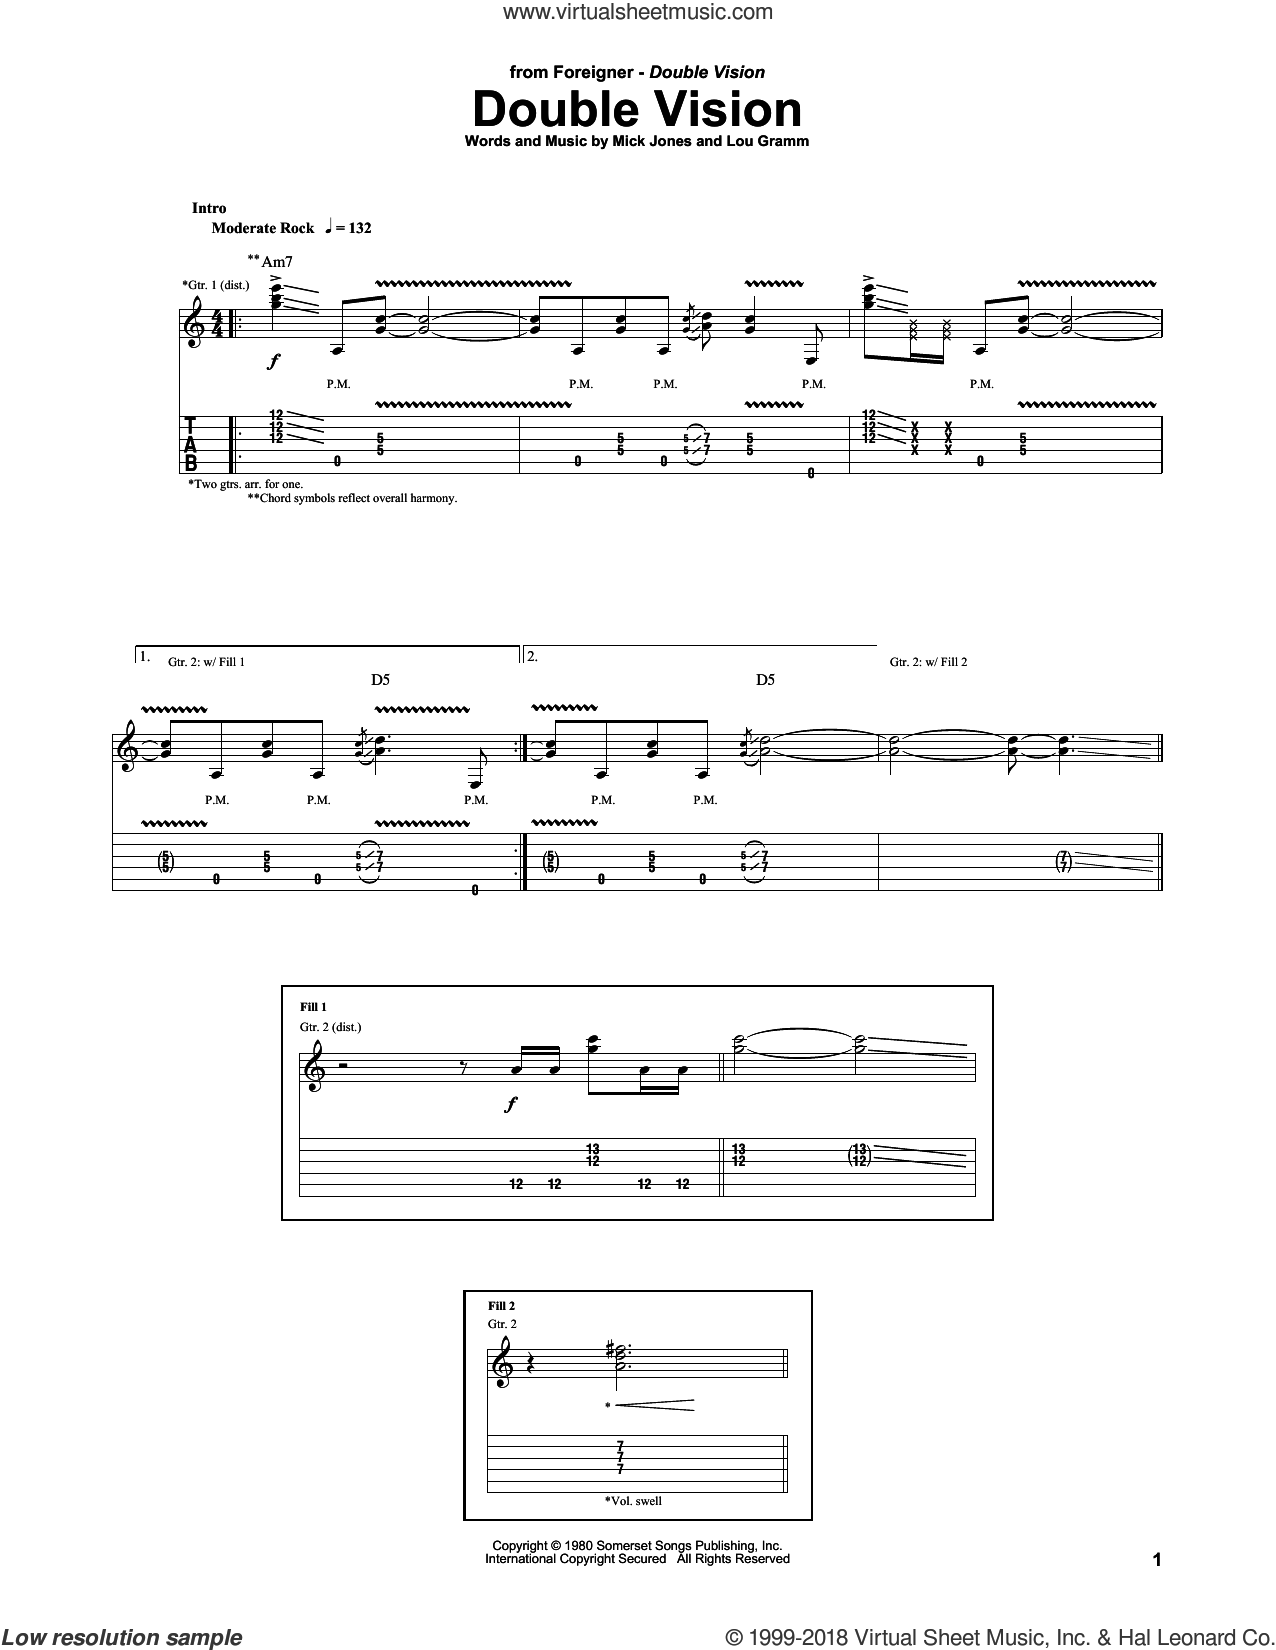 Double Vision sheet music for guitar (tablature) by Foreigner, Lou Gramm and Mick Jones, intermediate skill level